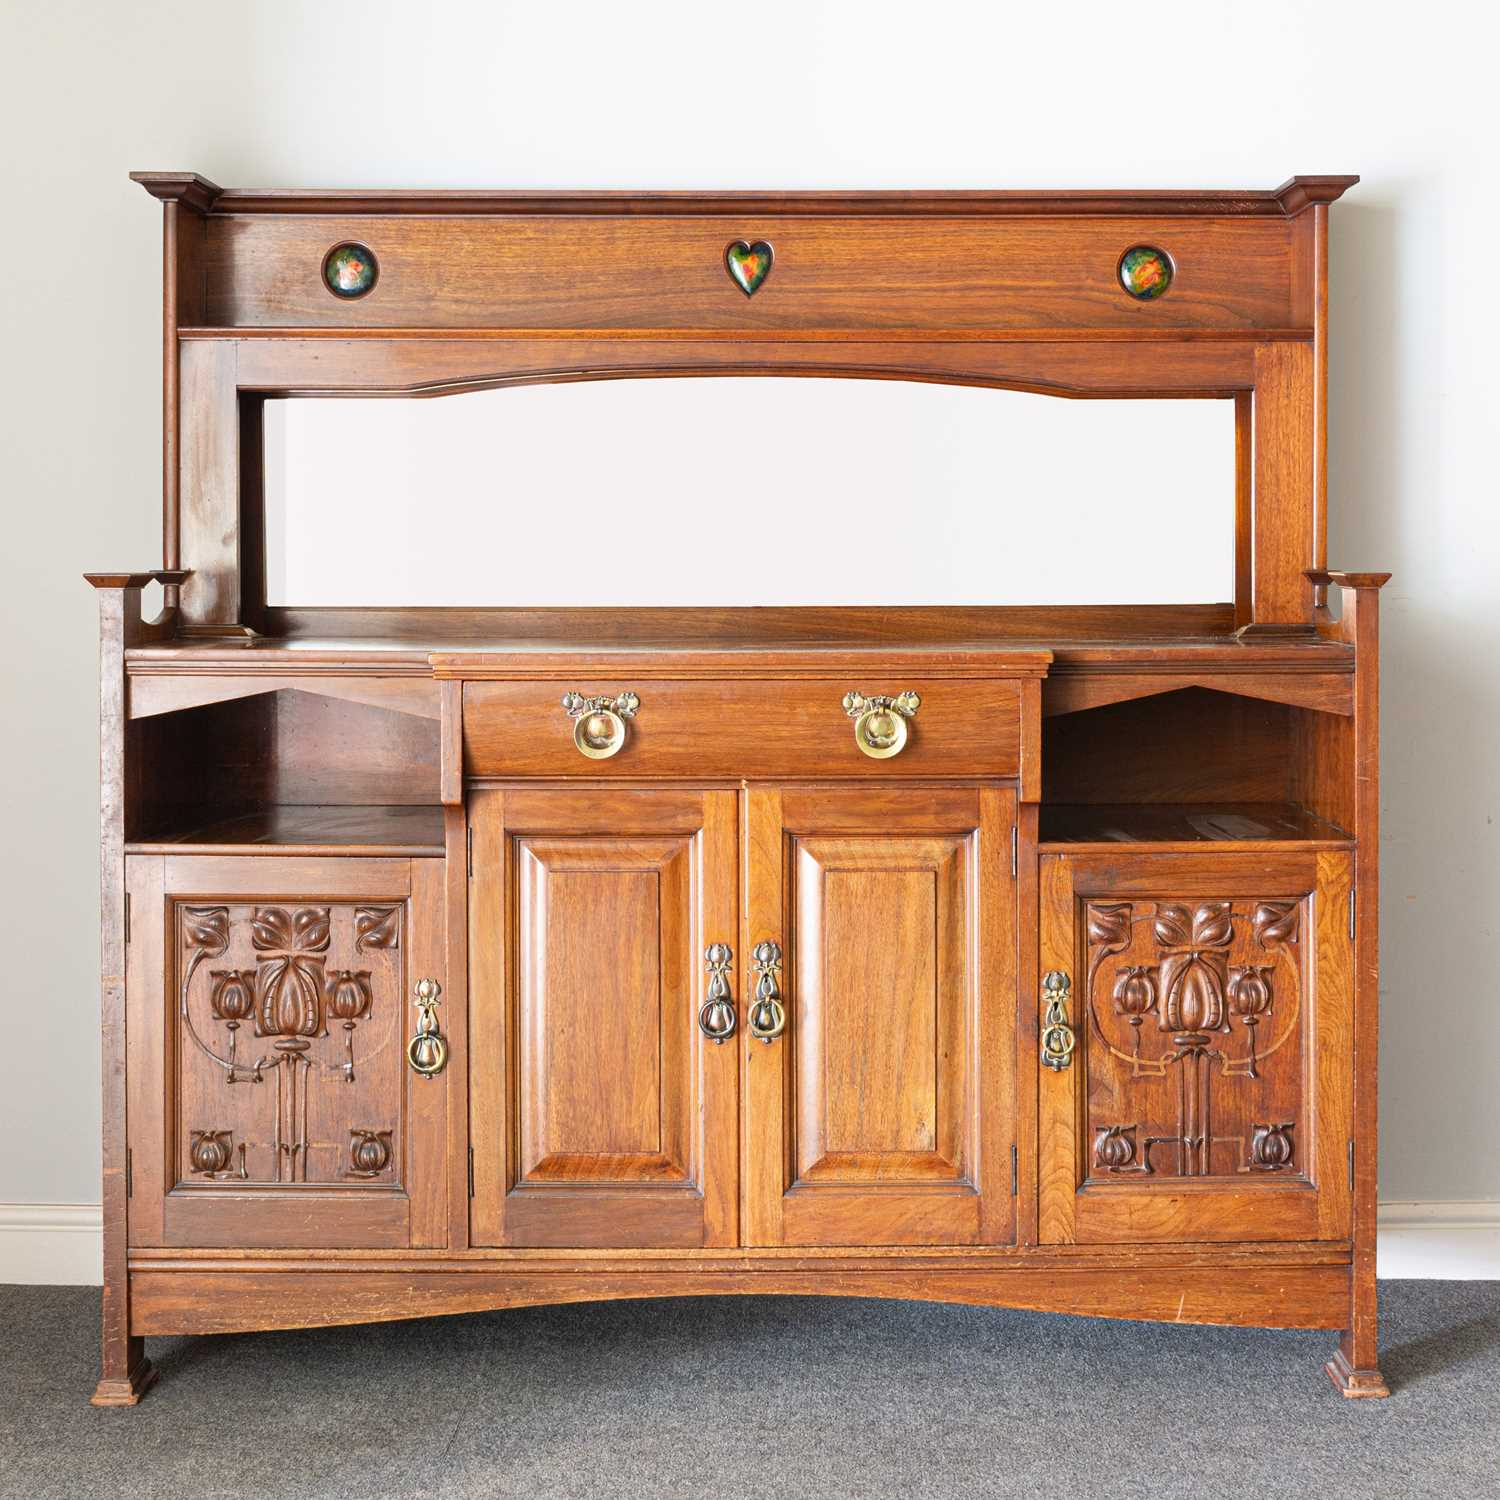 Lot 540-An Arts and Crafts walnut sideboard, by Shapland & Petter of Barnstaple